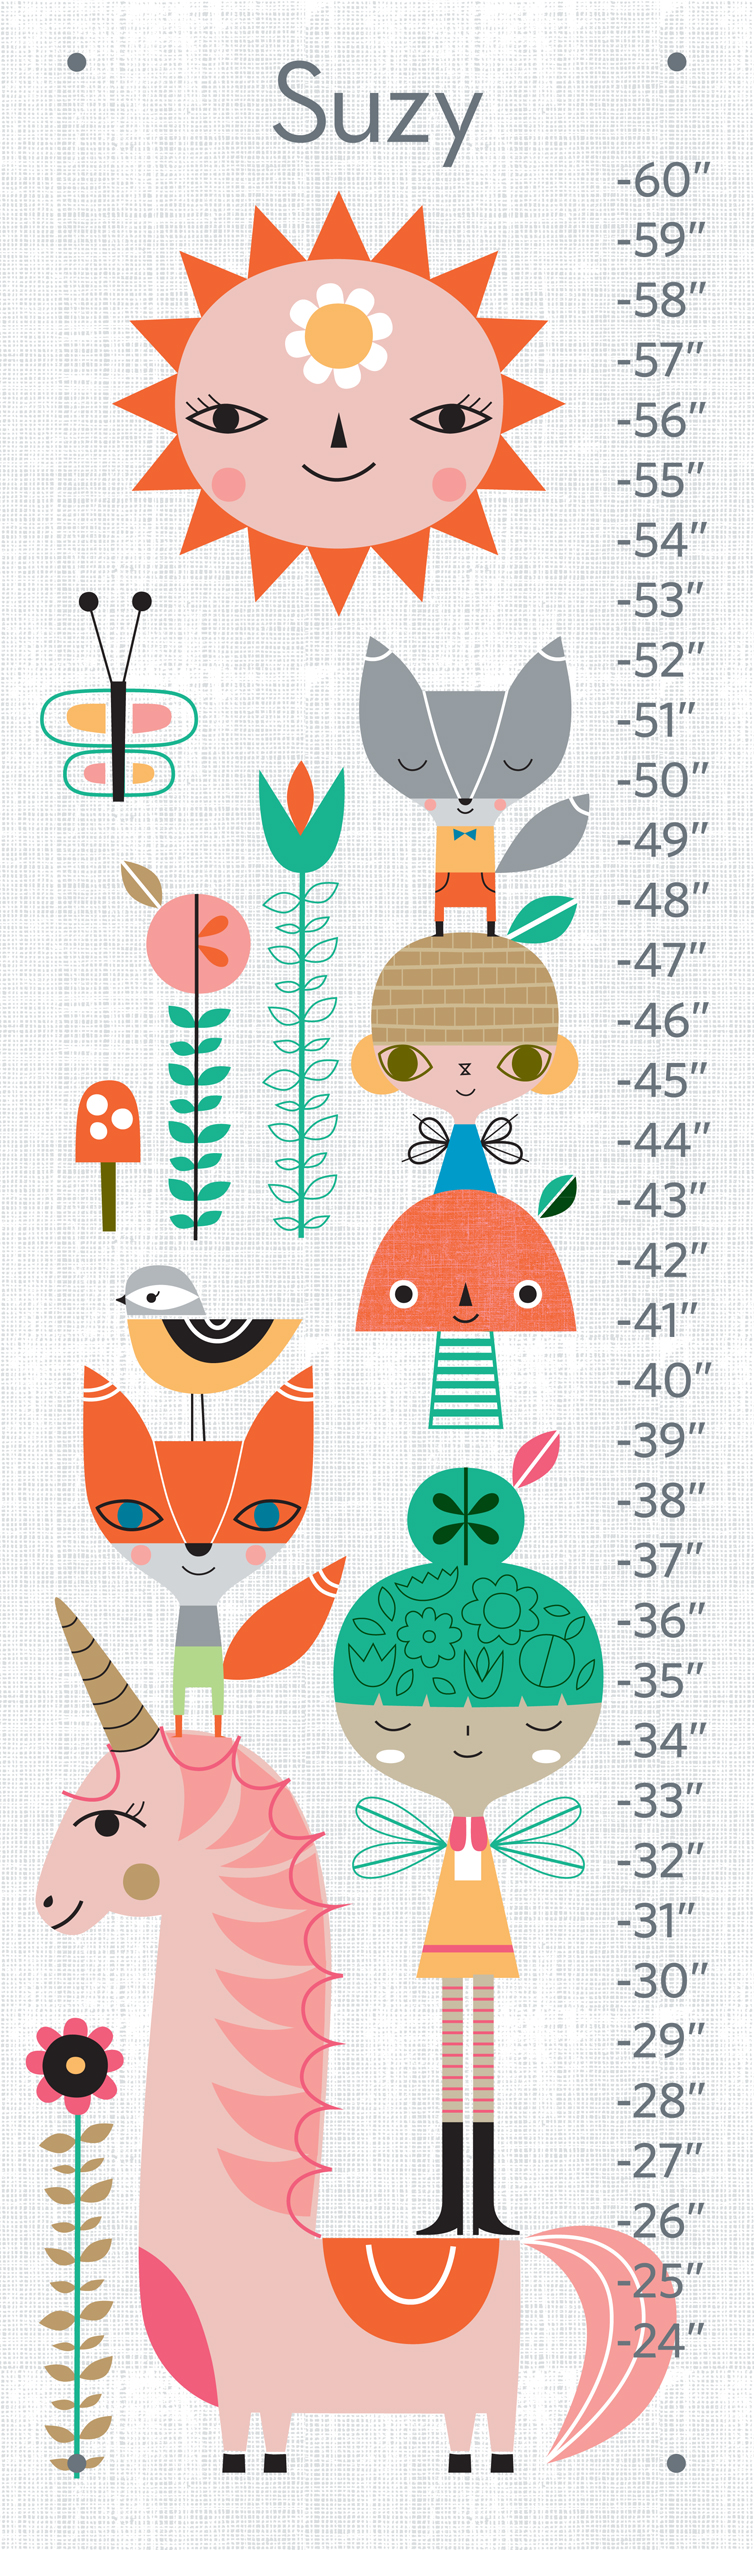 Fairytale Growth Chart